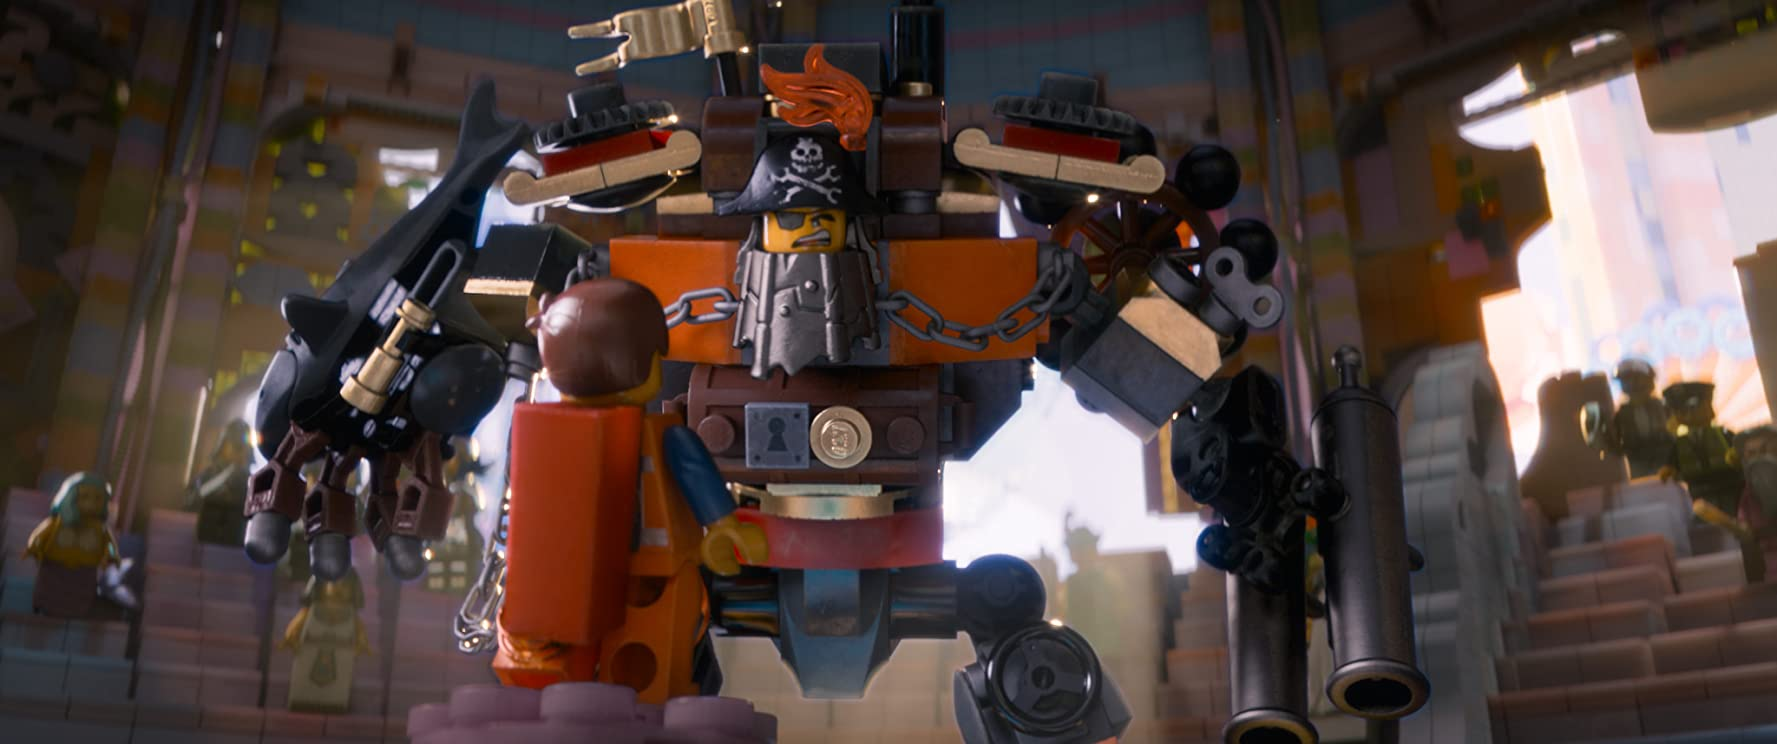 Nick Offerman and Chris Pratt in The Lego Movie (2014)